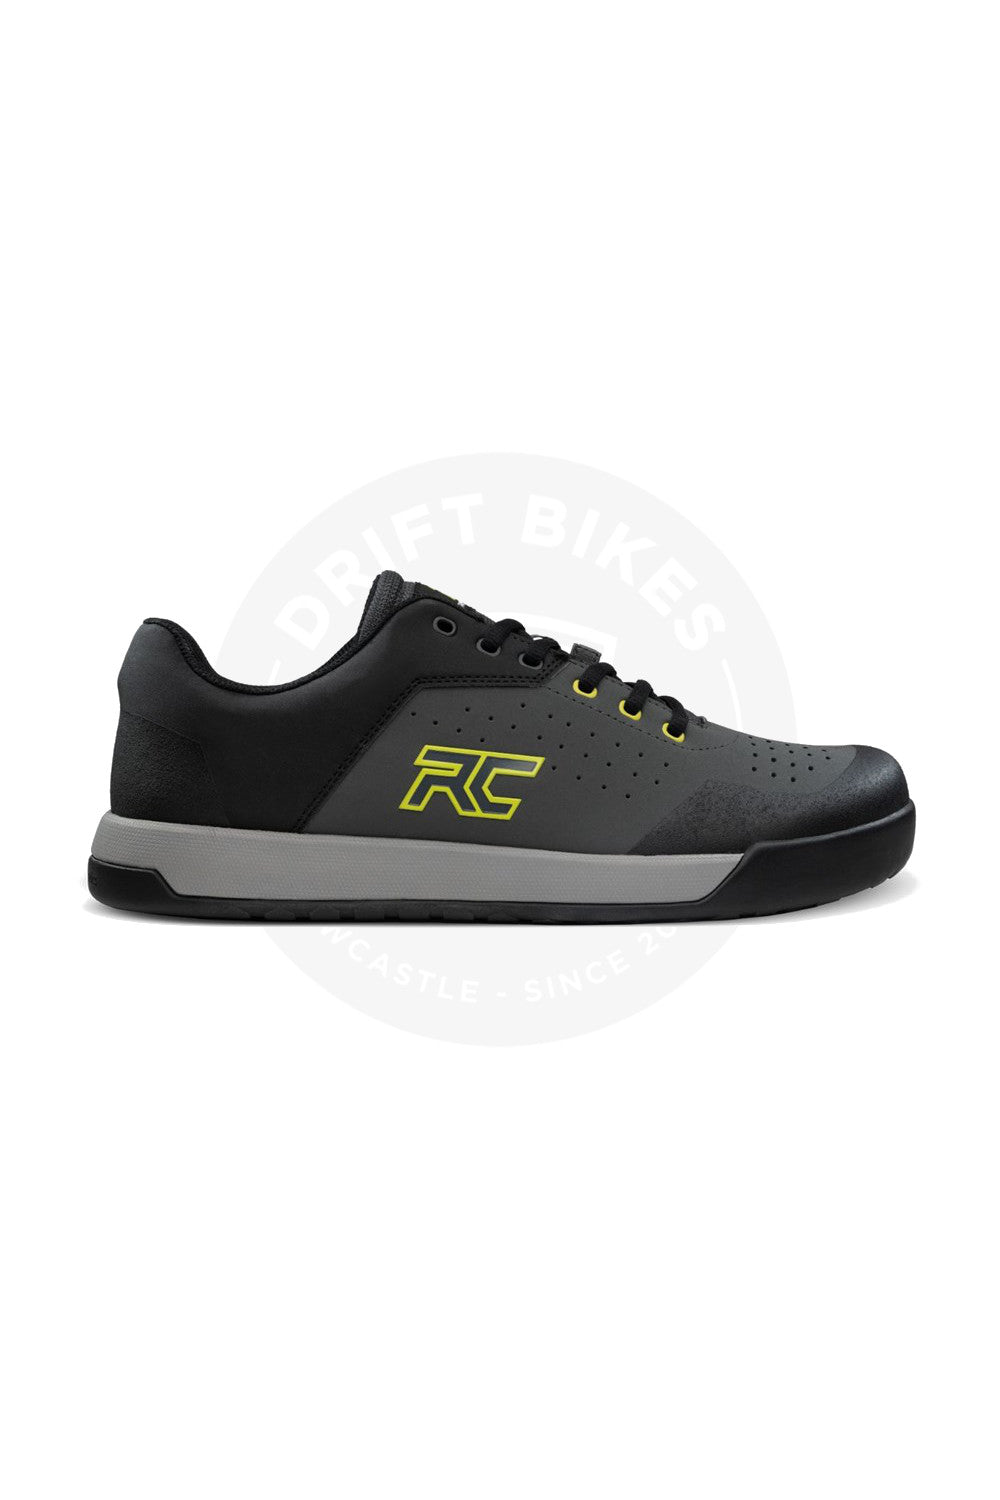 Ride Concepts Hellion Flat Bike Shoe